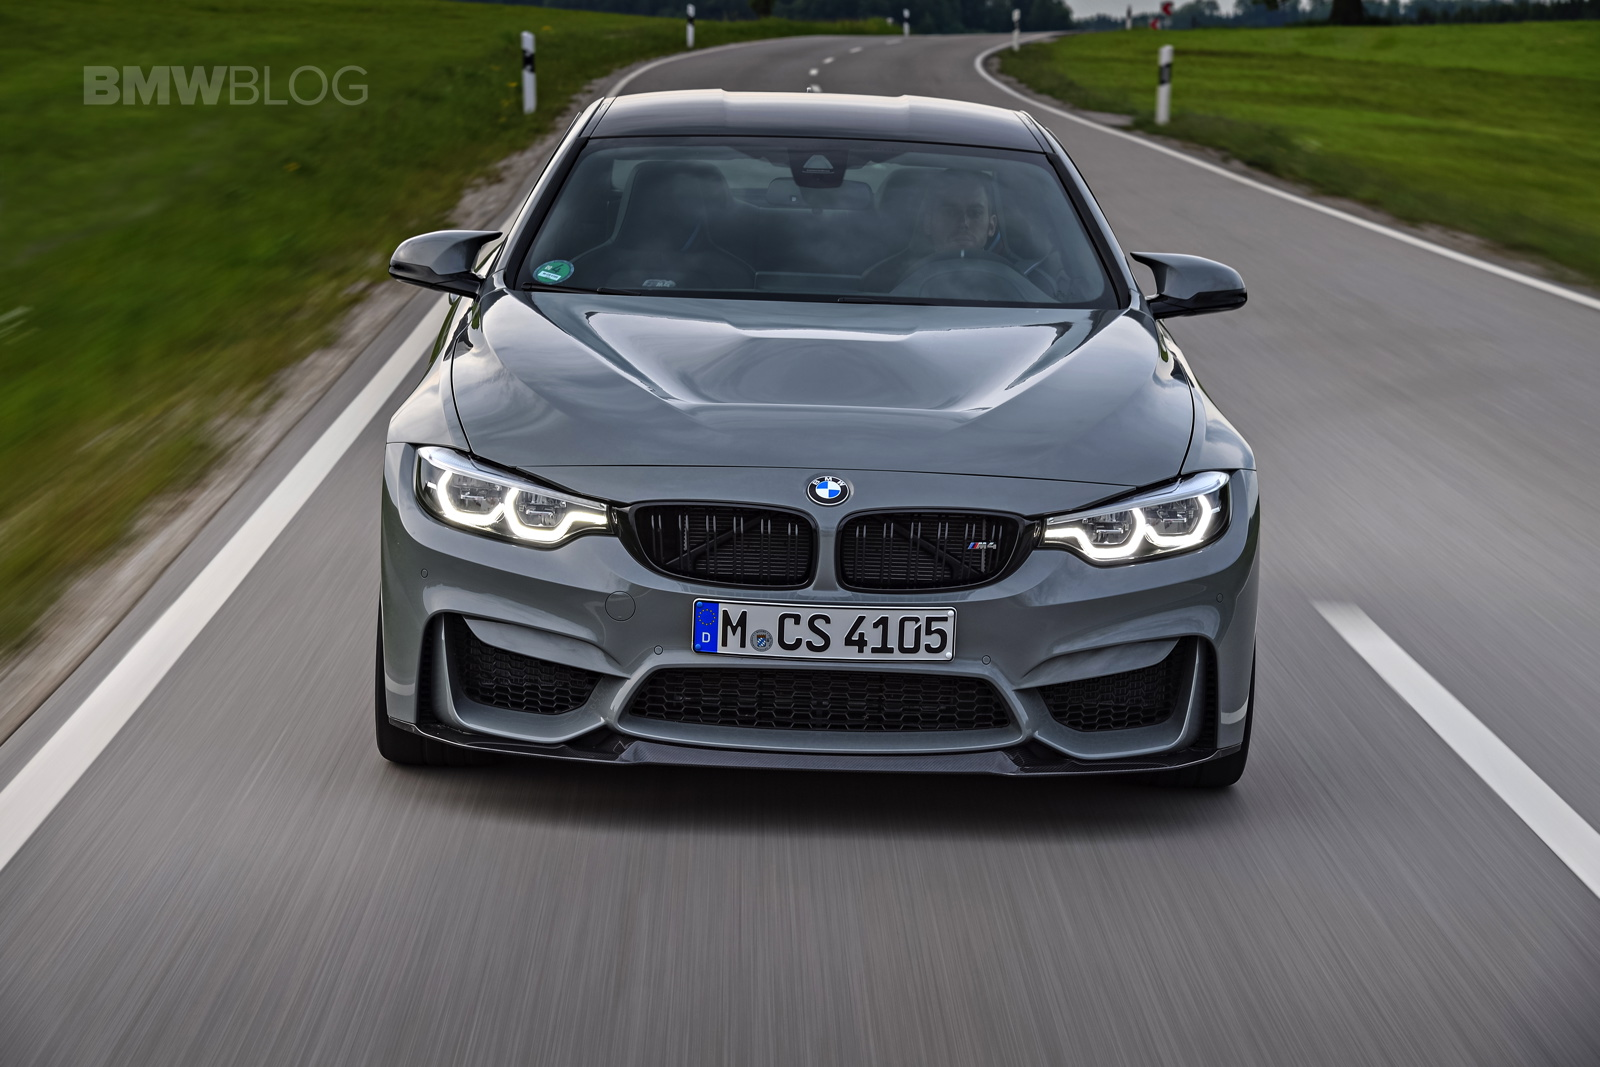 BMW M4 CS LIME ROCK GREY 51